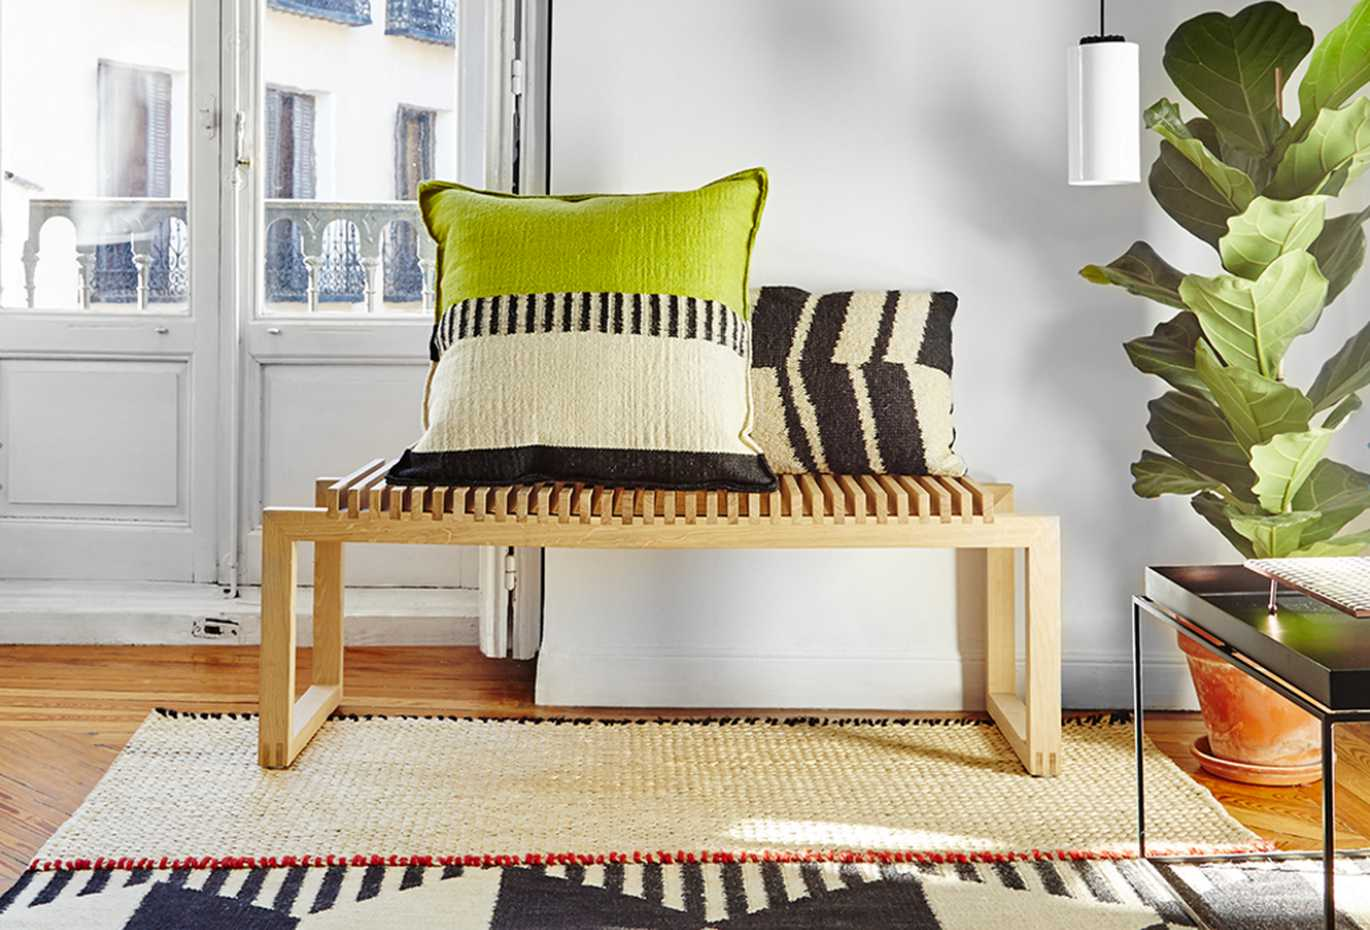 Rustic Chic Cushions by Gan Rugs product image 6